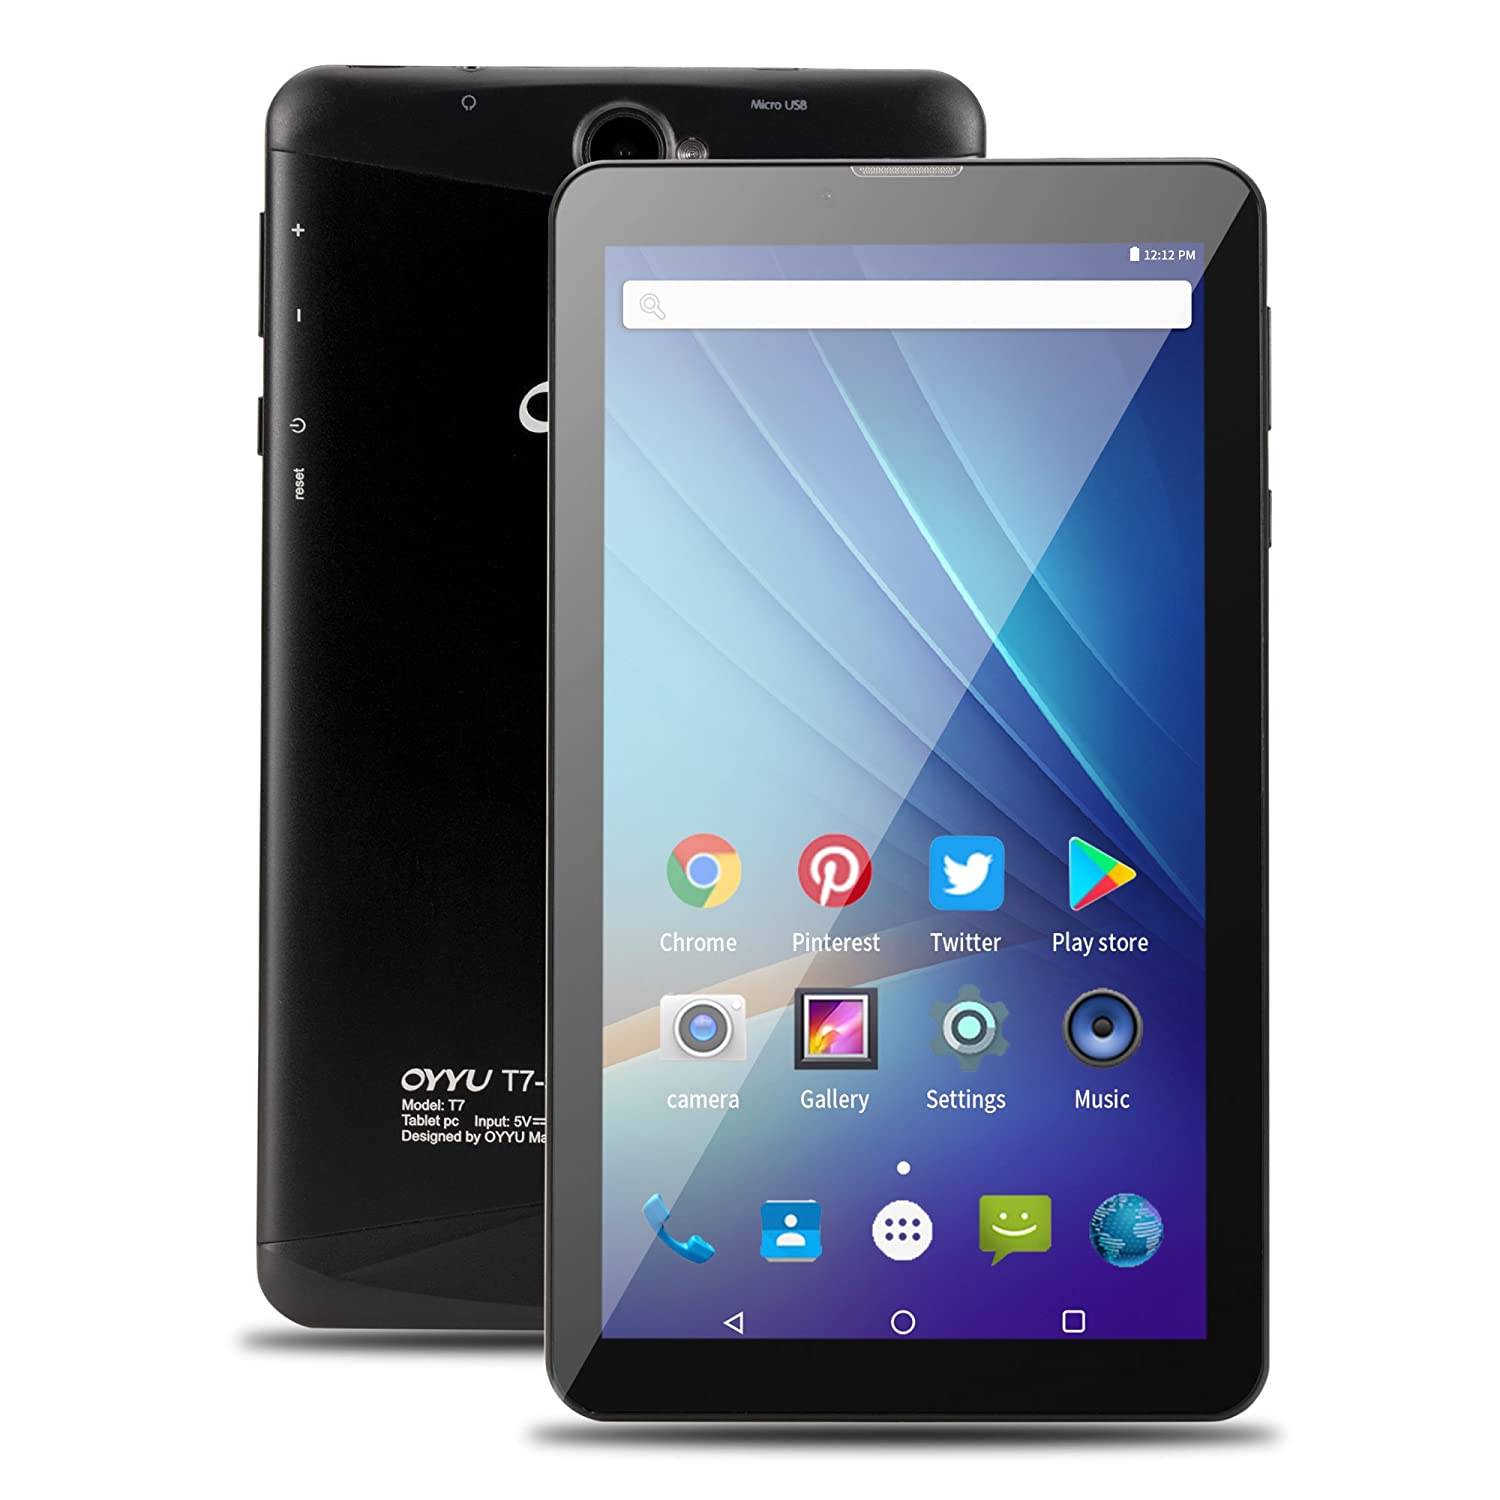 oyyu t7 pro 7 inch 4g lte phablet android 7 0 dual sim. Black Bedroom Furniture Sets. Home Design Ideas